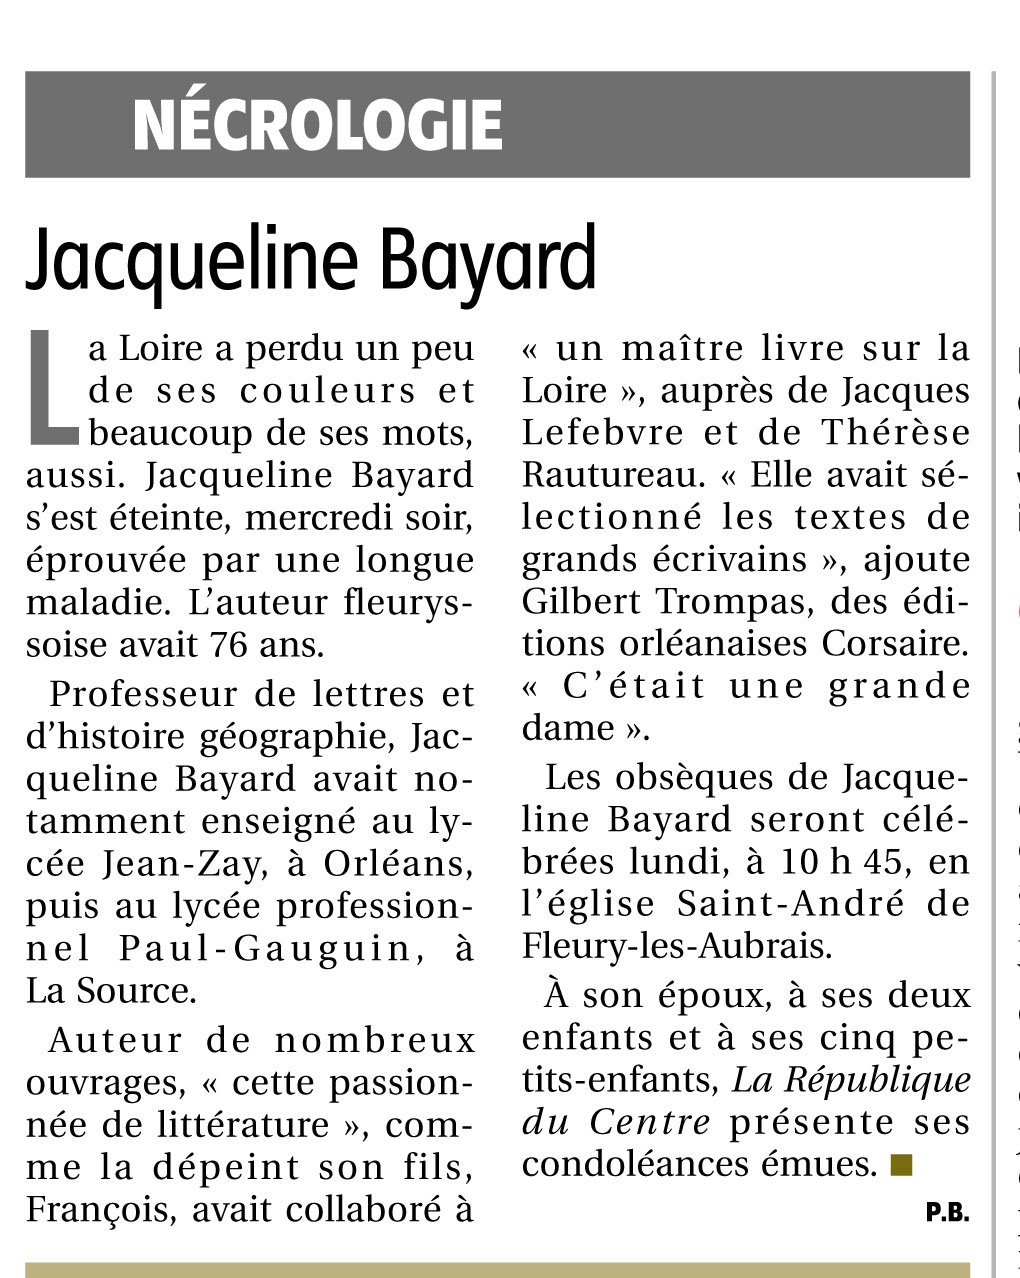 Disparition de Jacqueline Bayard